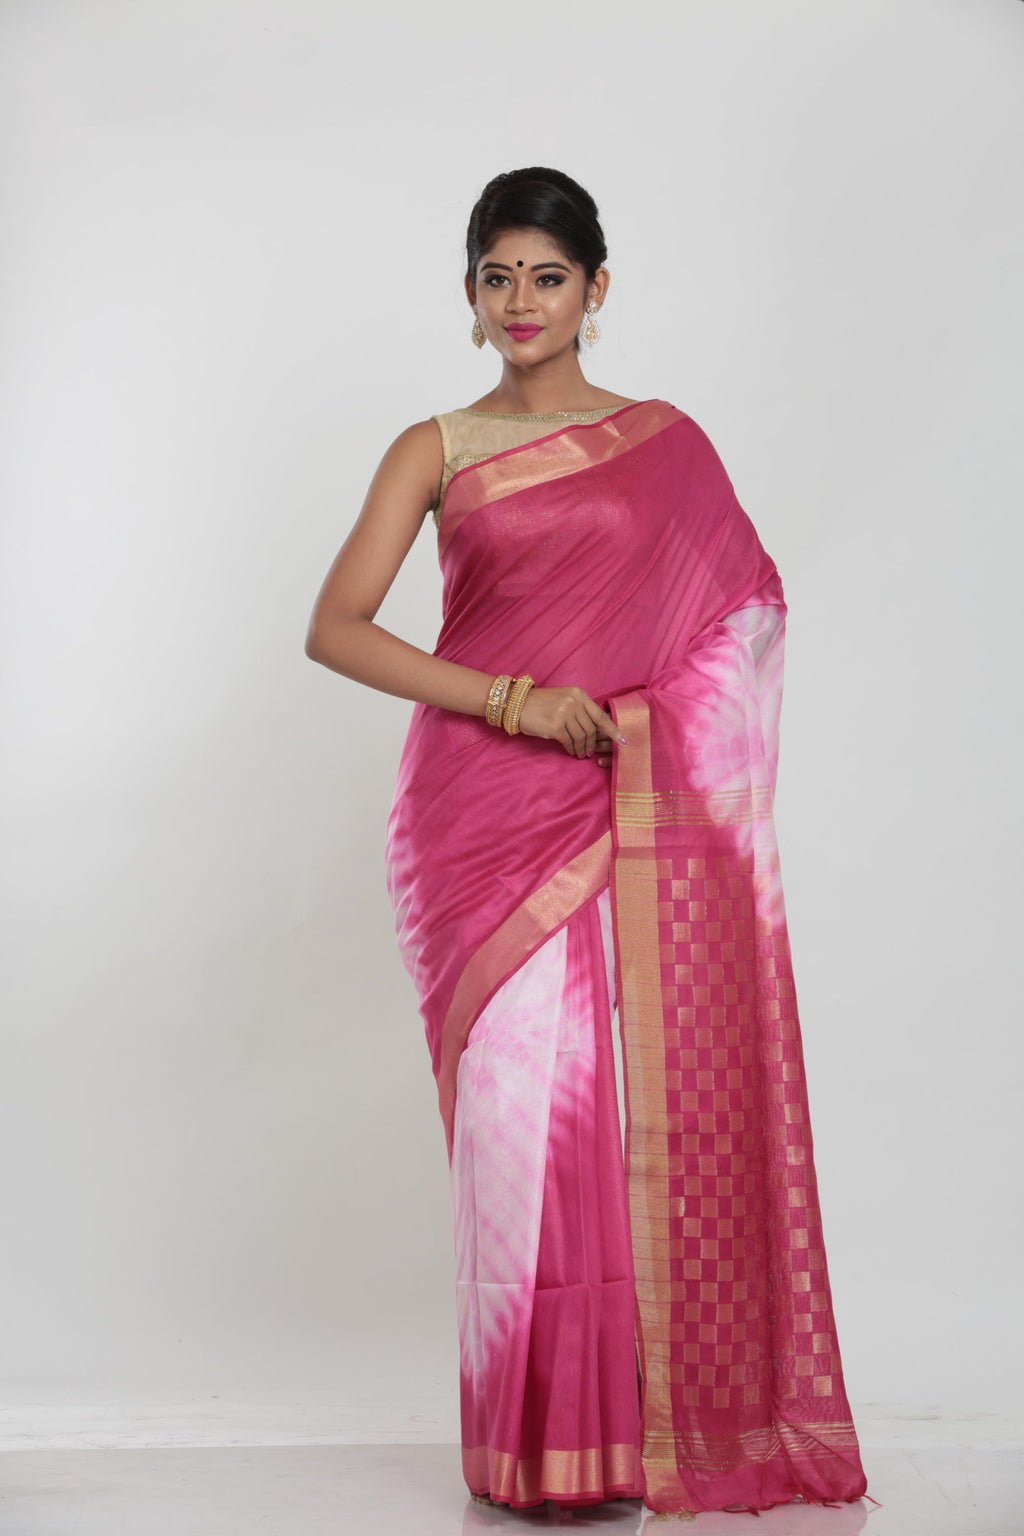 PURPLE COLOUR MUGA HANDLOOM SAREE WITH CONTRASTING TIE AND DIE EFFECT